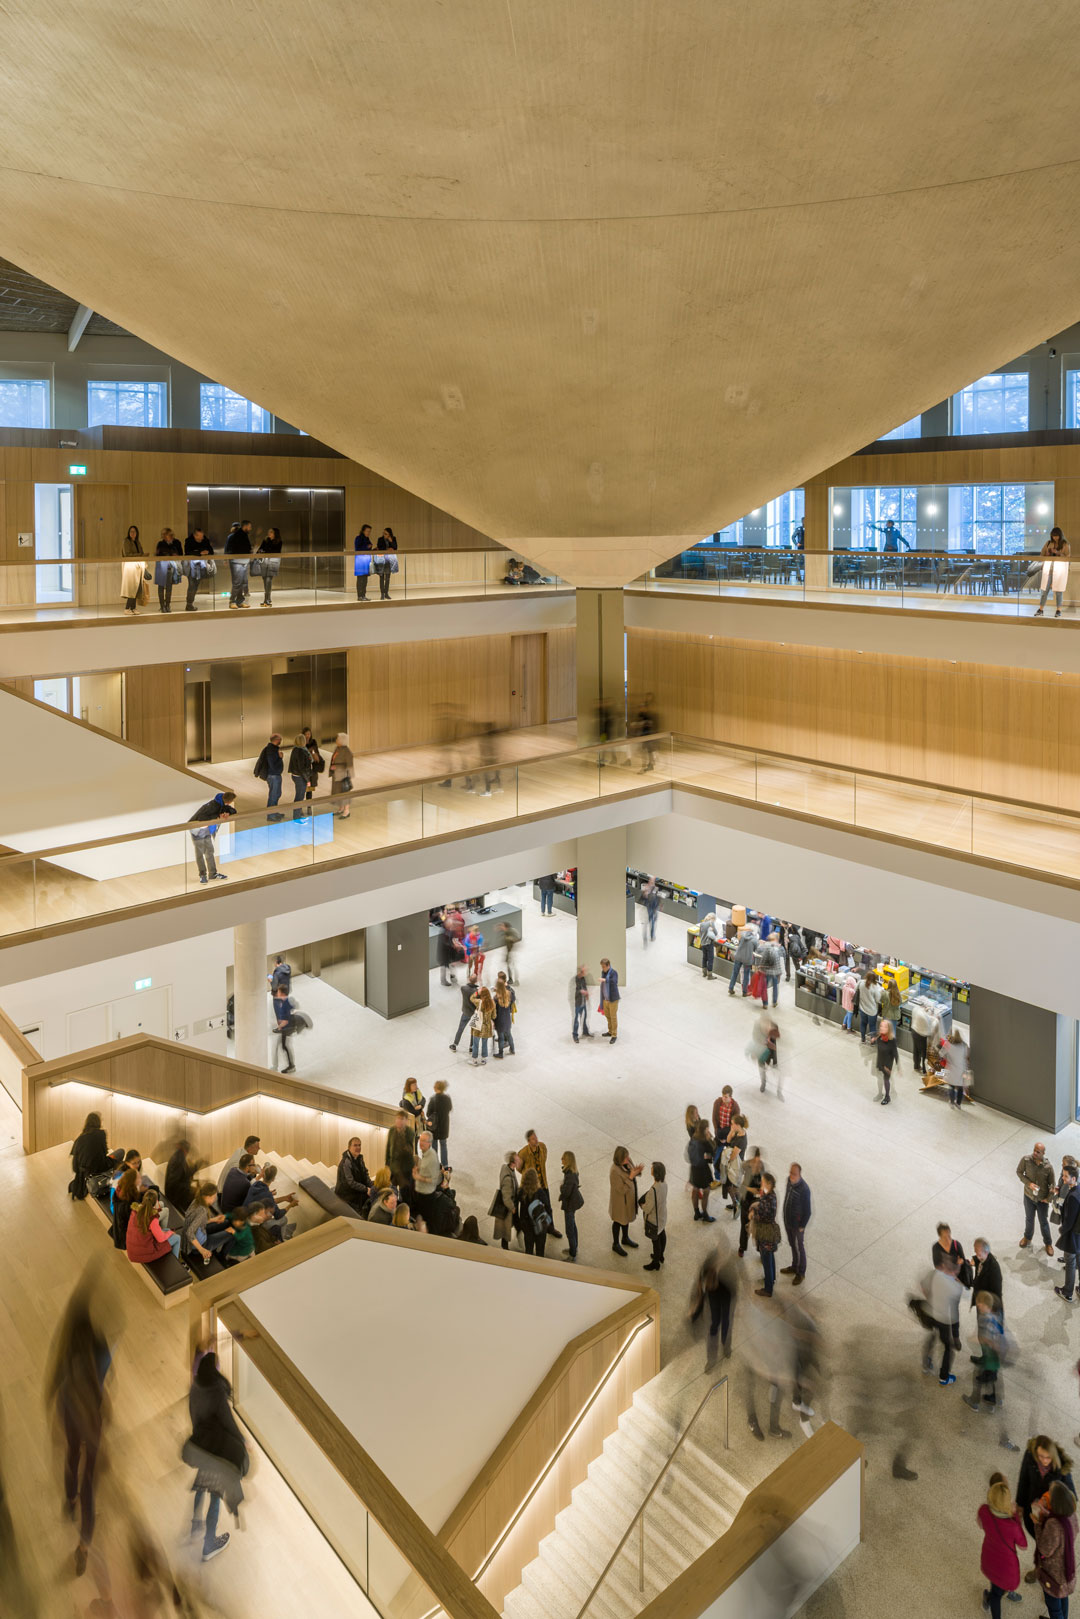 The interior of the Design Museum. Photograph by Gareth Gardner